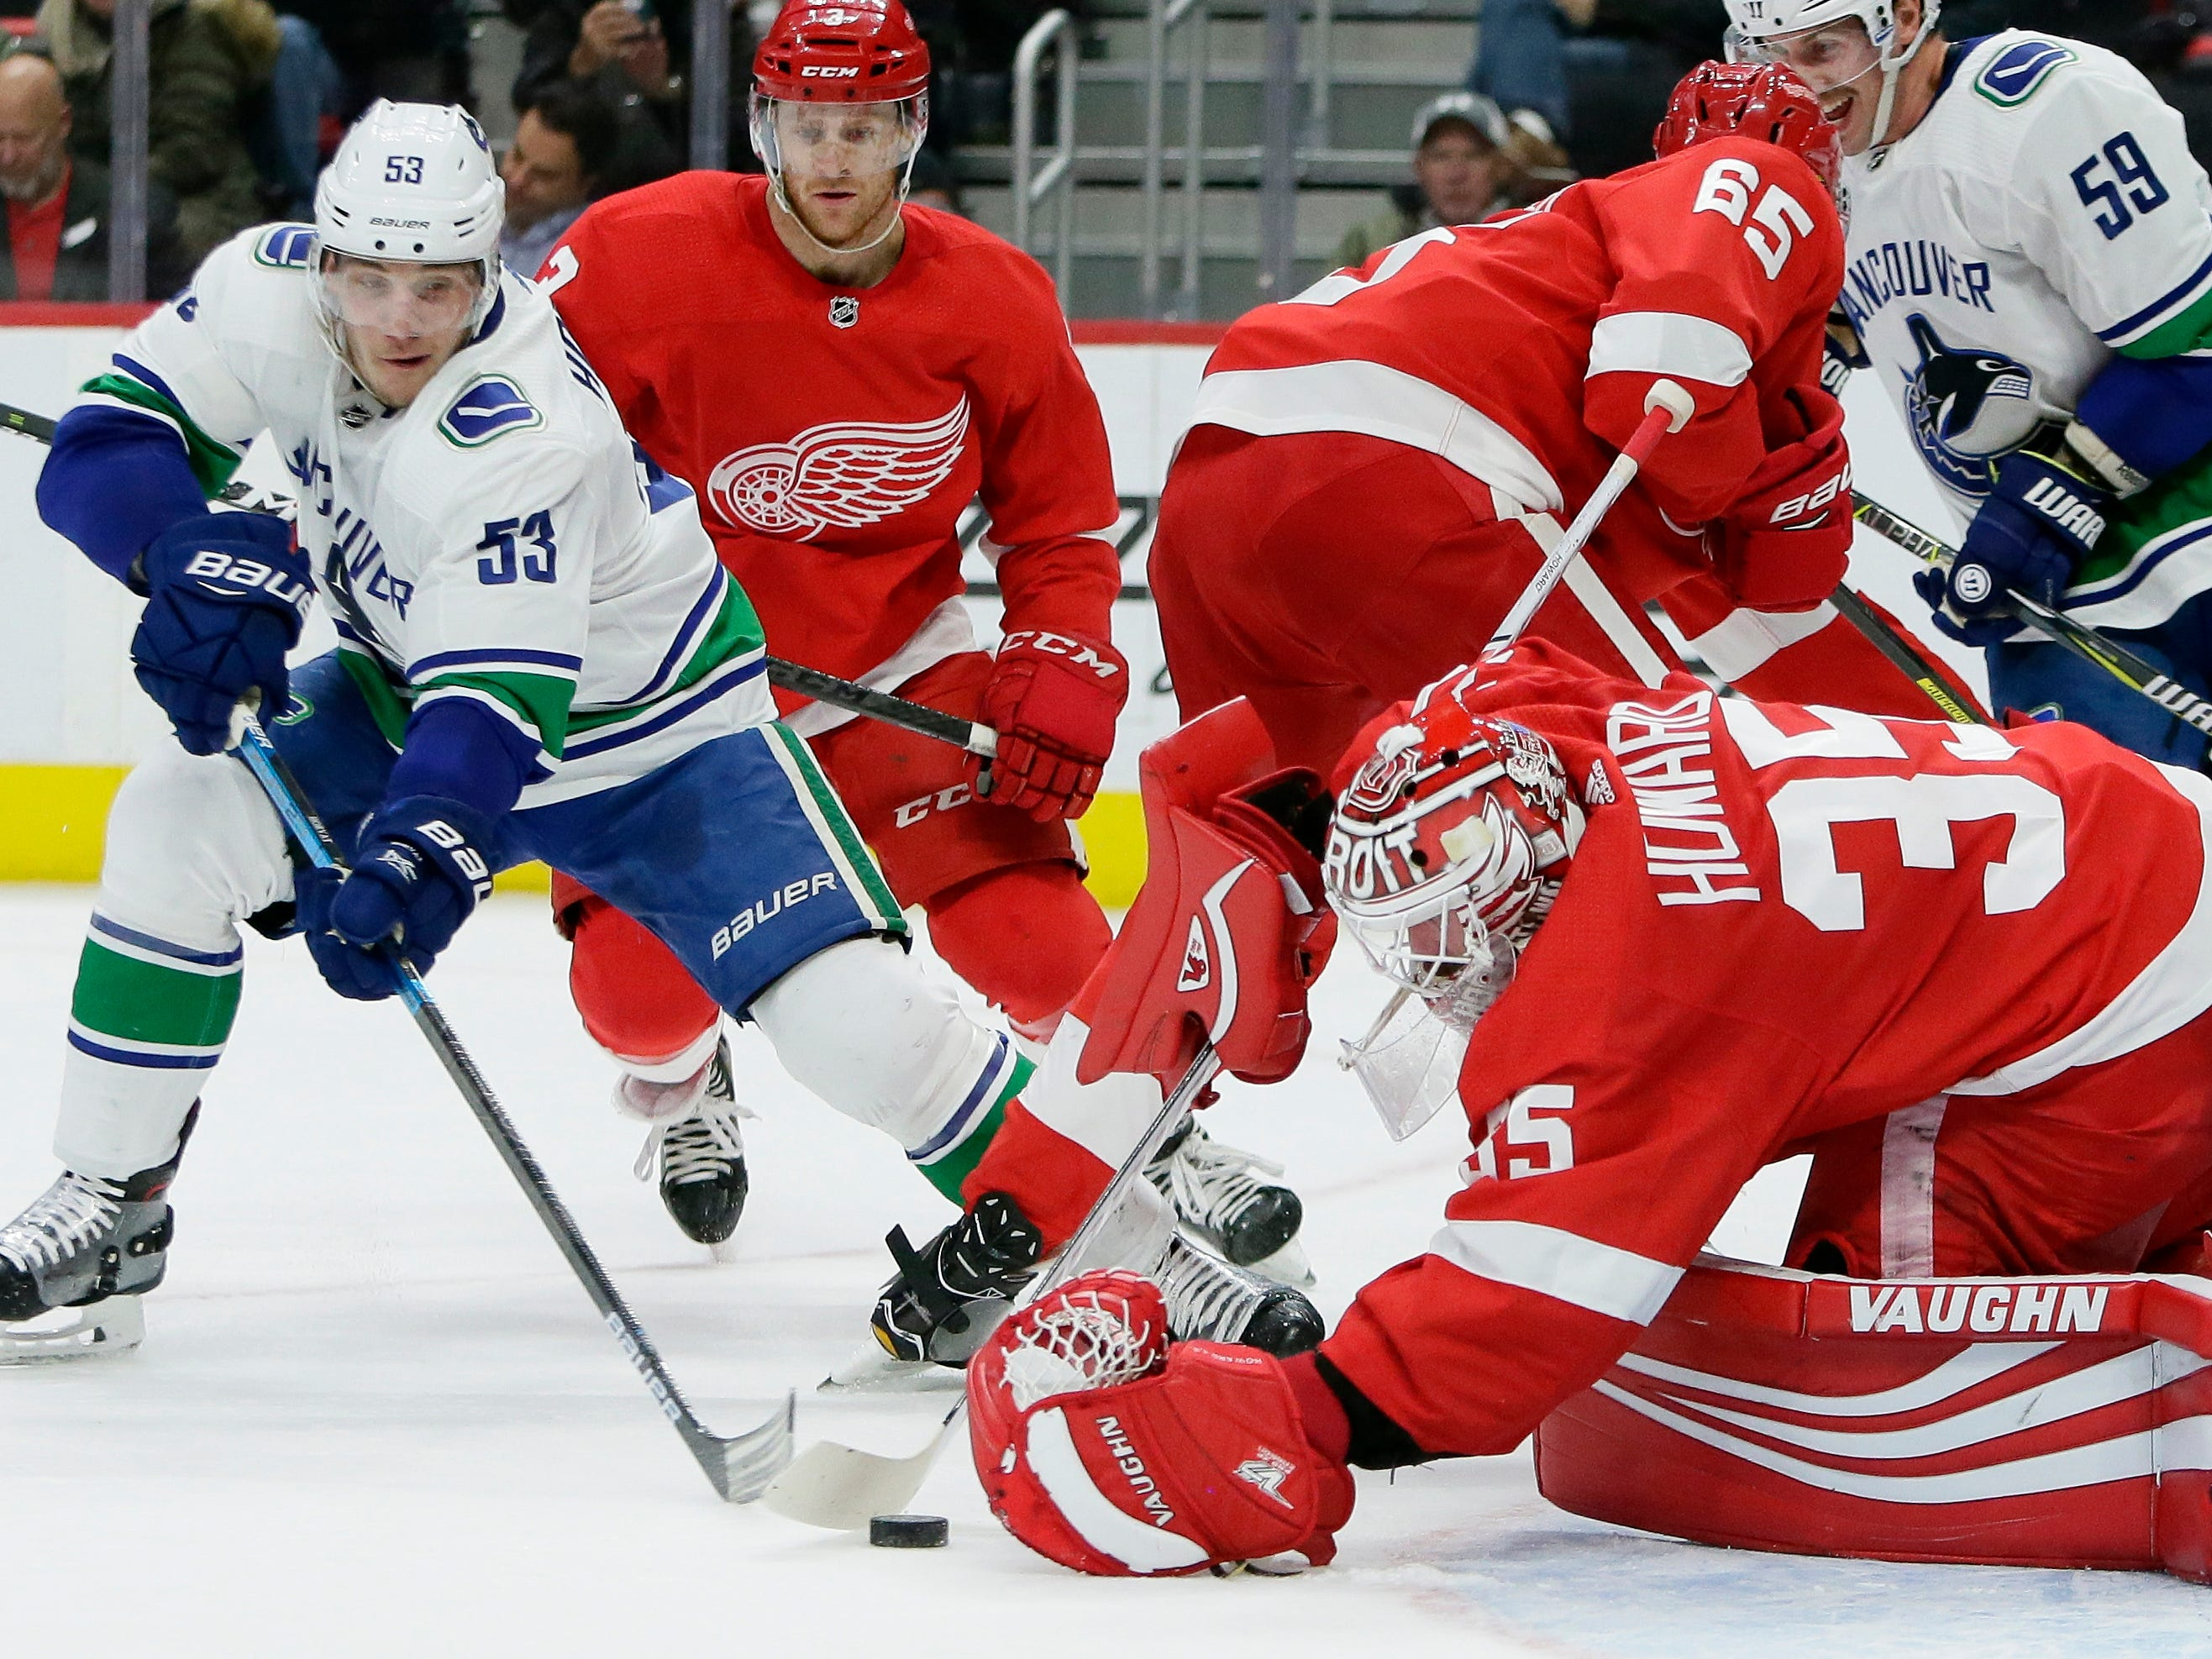 Detroit Red Wings rally out of early hole, top Canucks in SO, 3-2